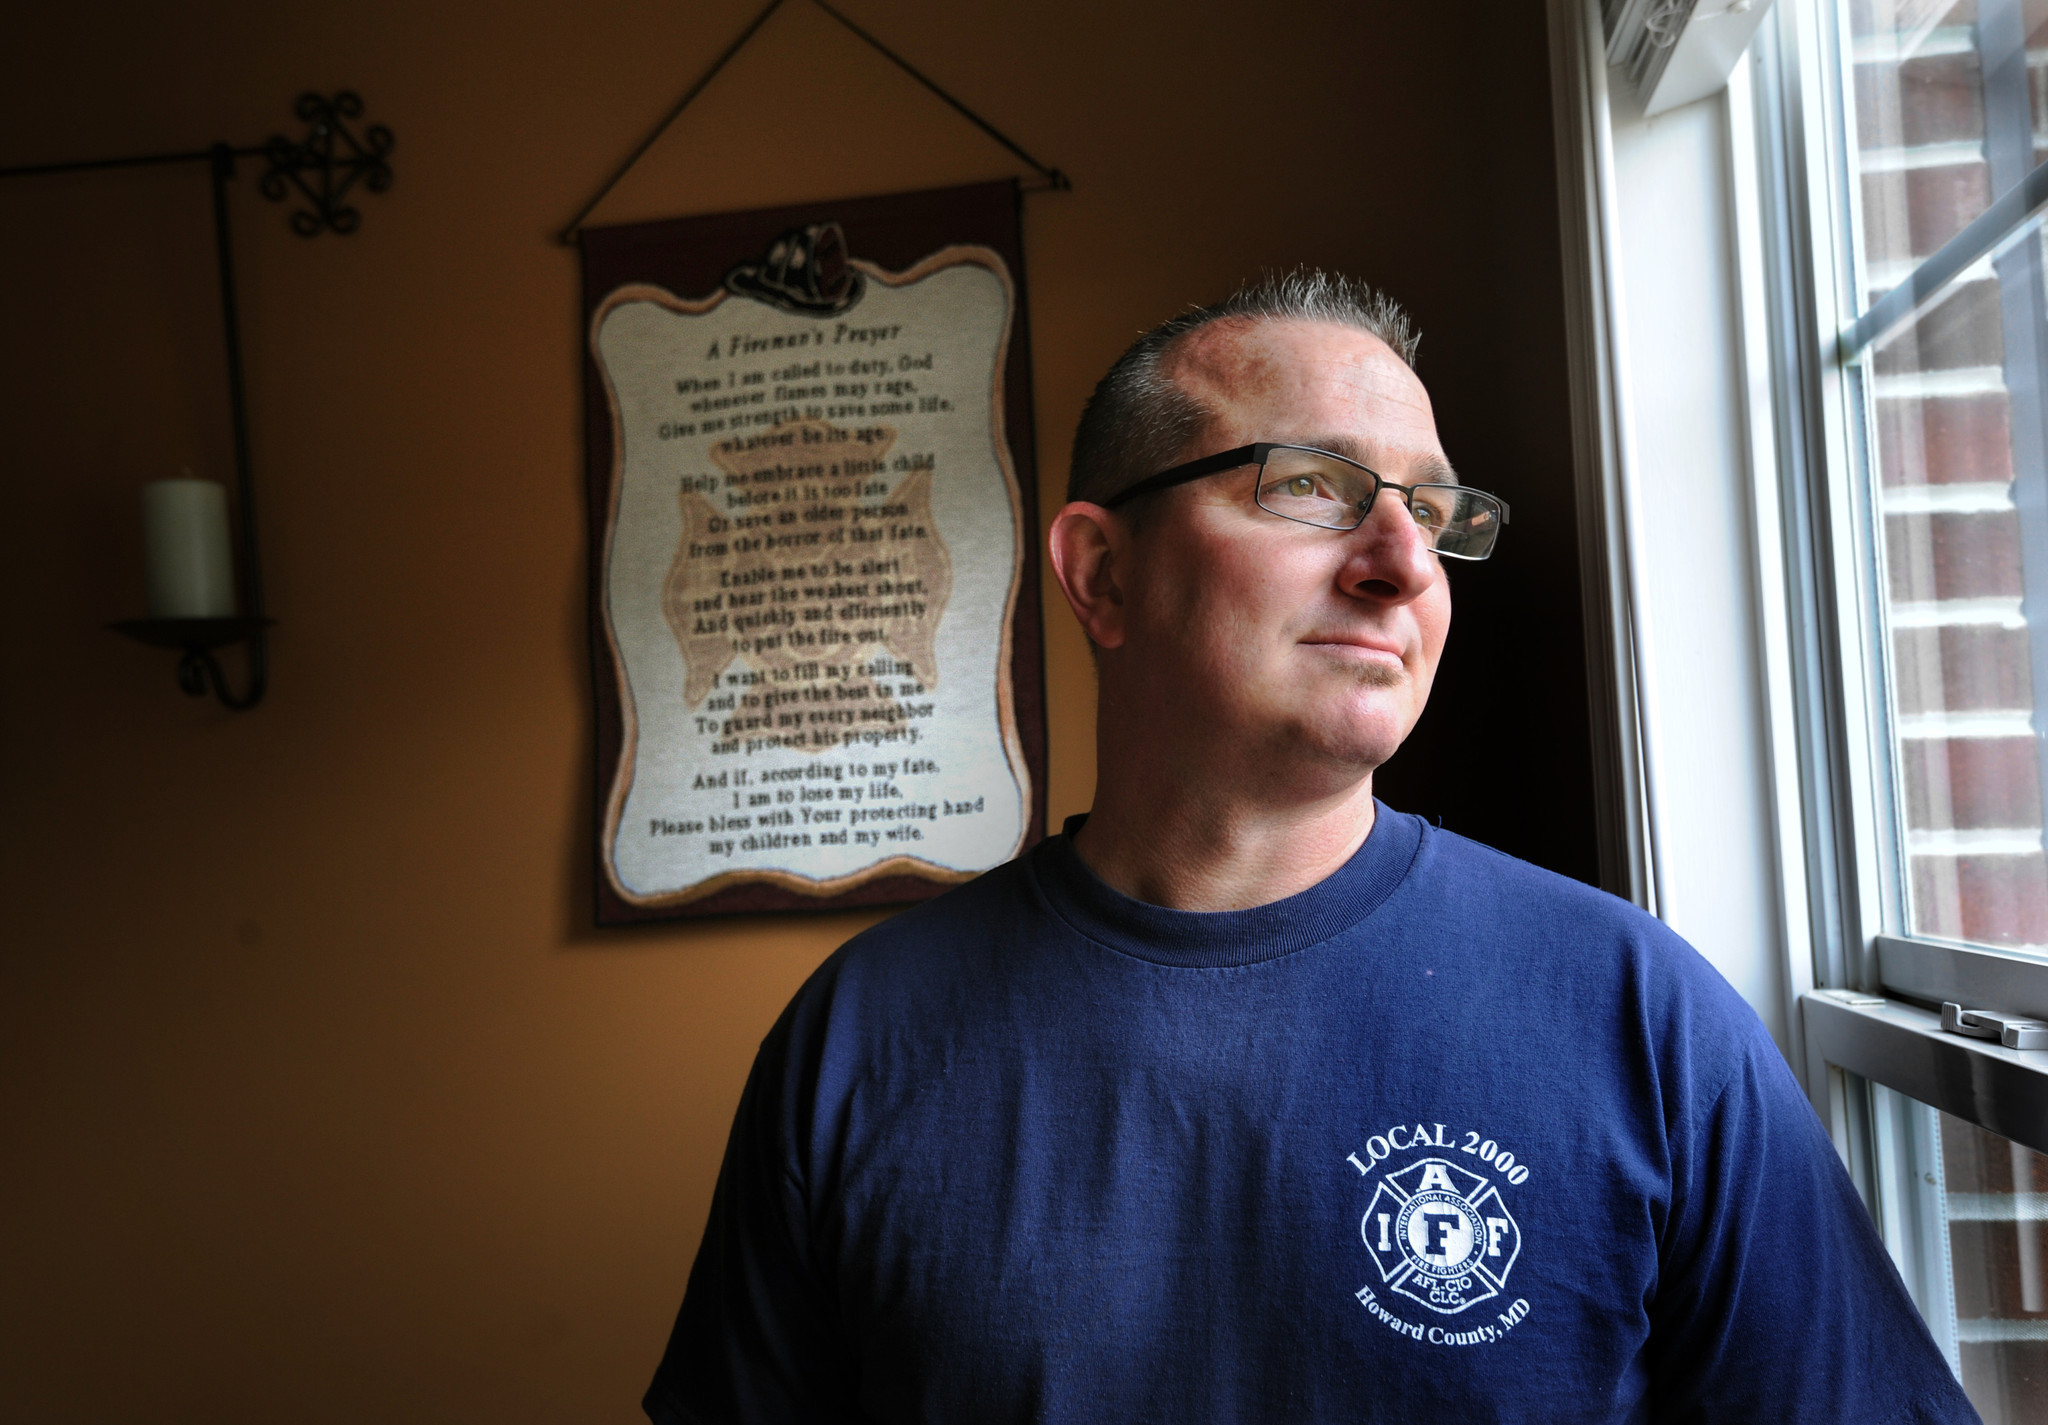 Howard County firefighter John Orth was diagnosed with cancer in May 2012 at age 44. He blames the disease on chemicals he was exposed to on the job.